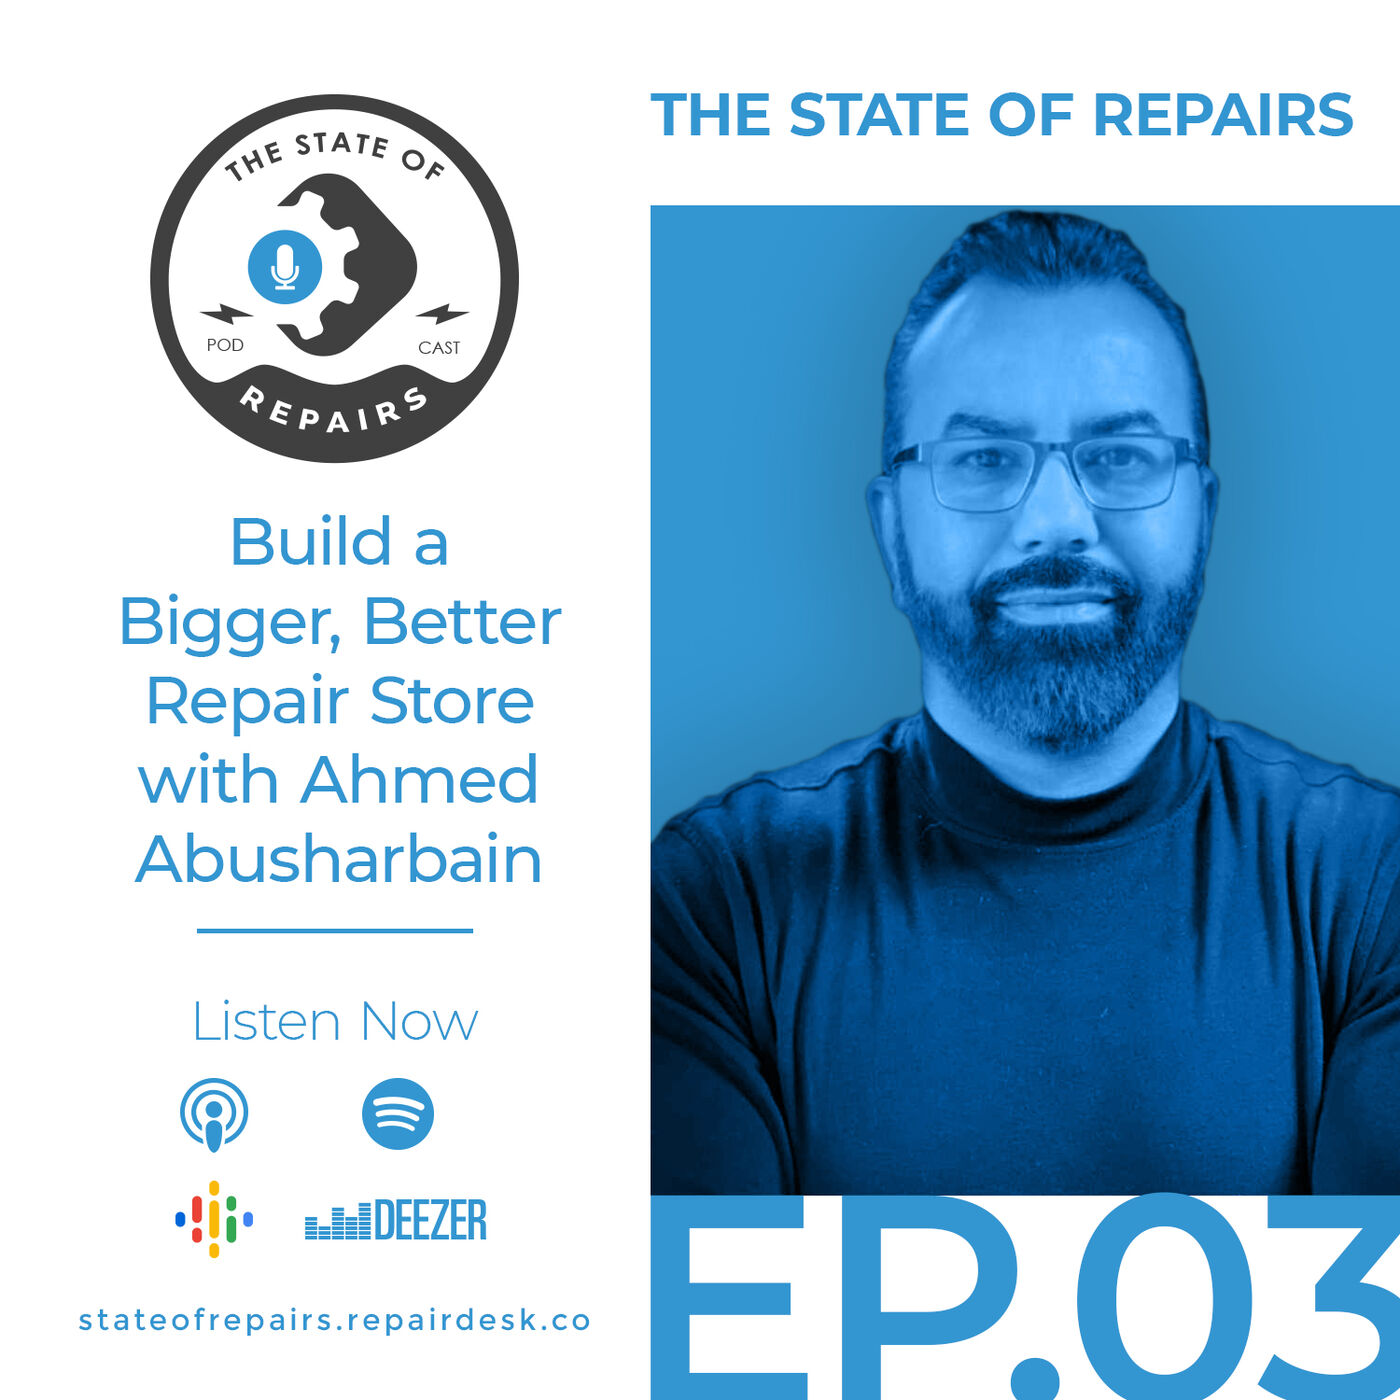 Episode 3 - Build a Bigger, Better Repair Store with Ahmed Abusharbain